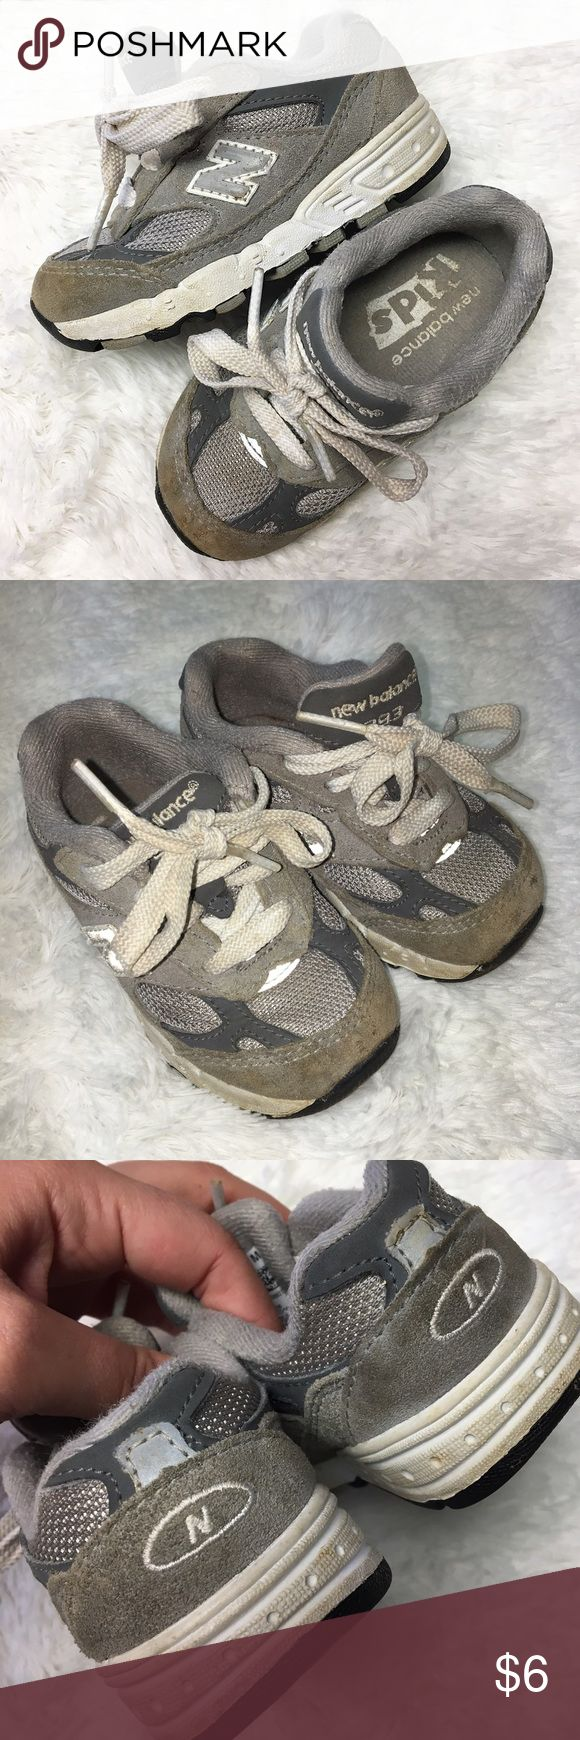 new balance 993 toddler shoes